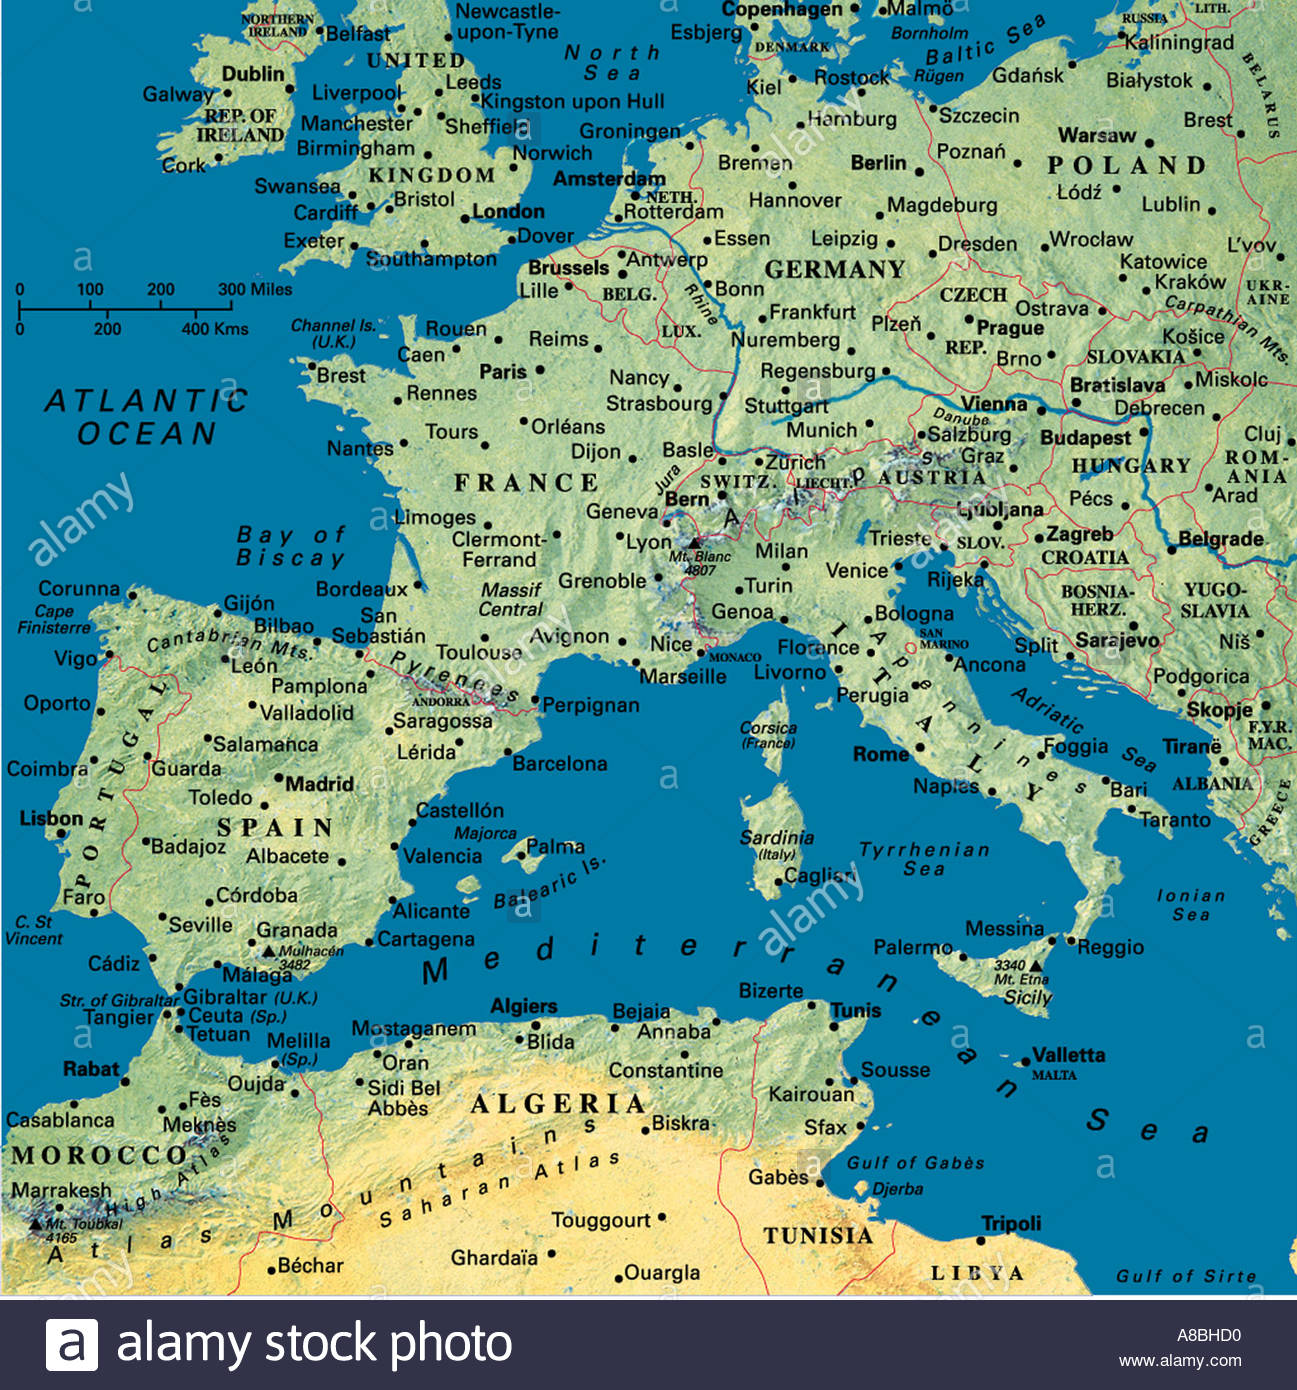 Map Maps Europe Algeria Tunesia North Africa Spain Portugal France